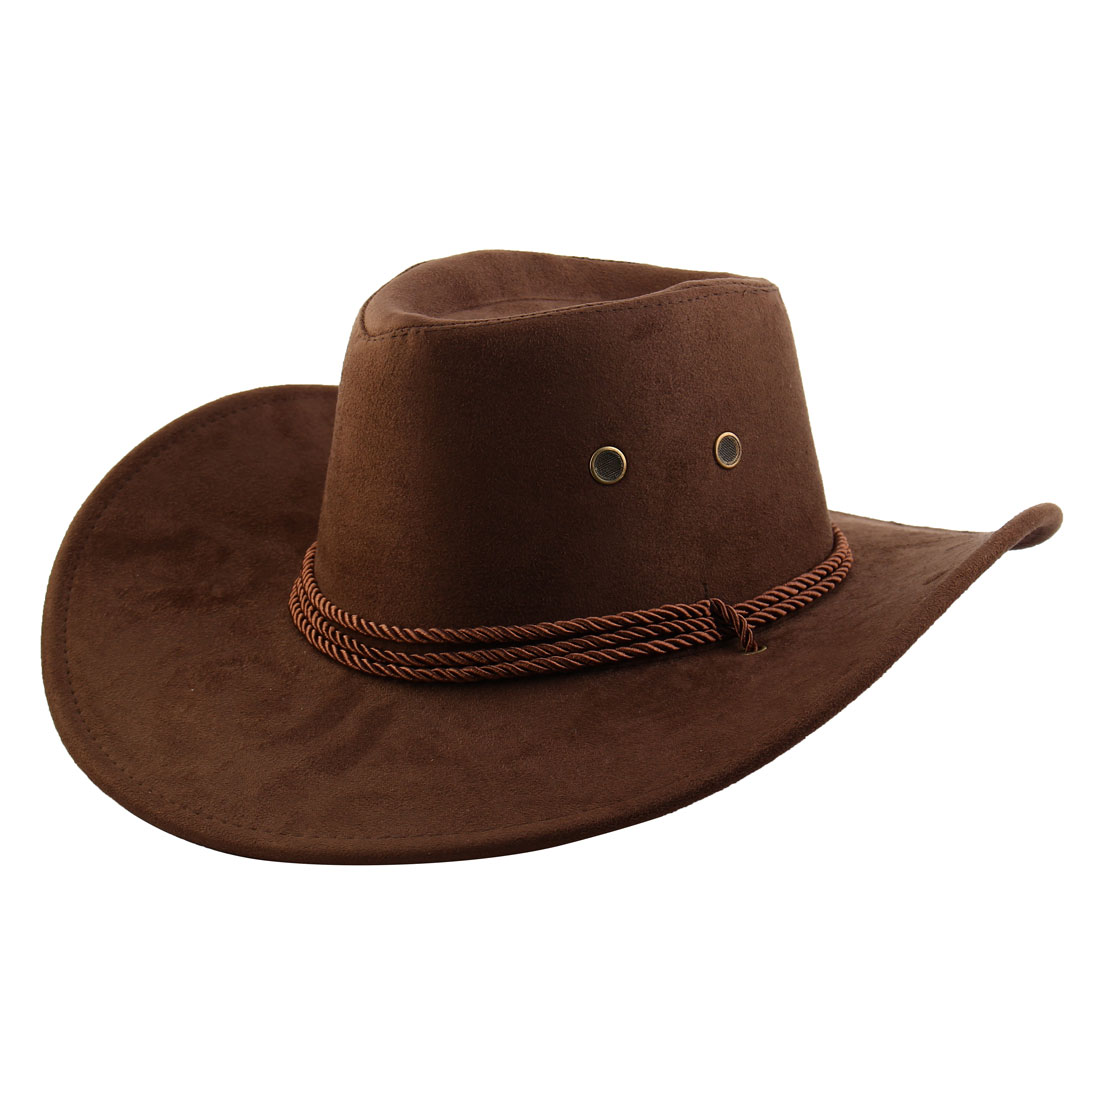 Faux Suede Adjustable Neck Strap Western Style Sunhat Cowboy Hat Coffee Color